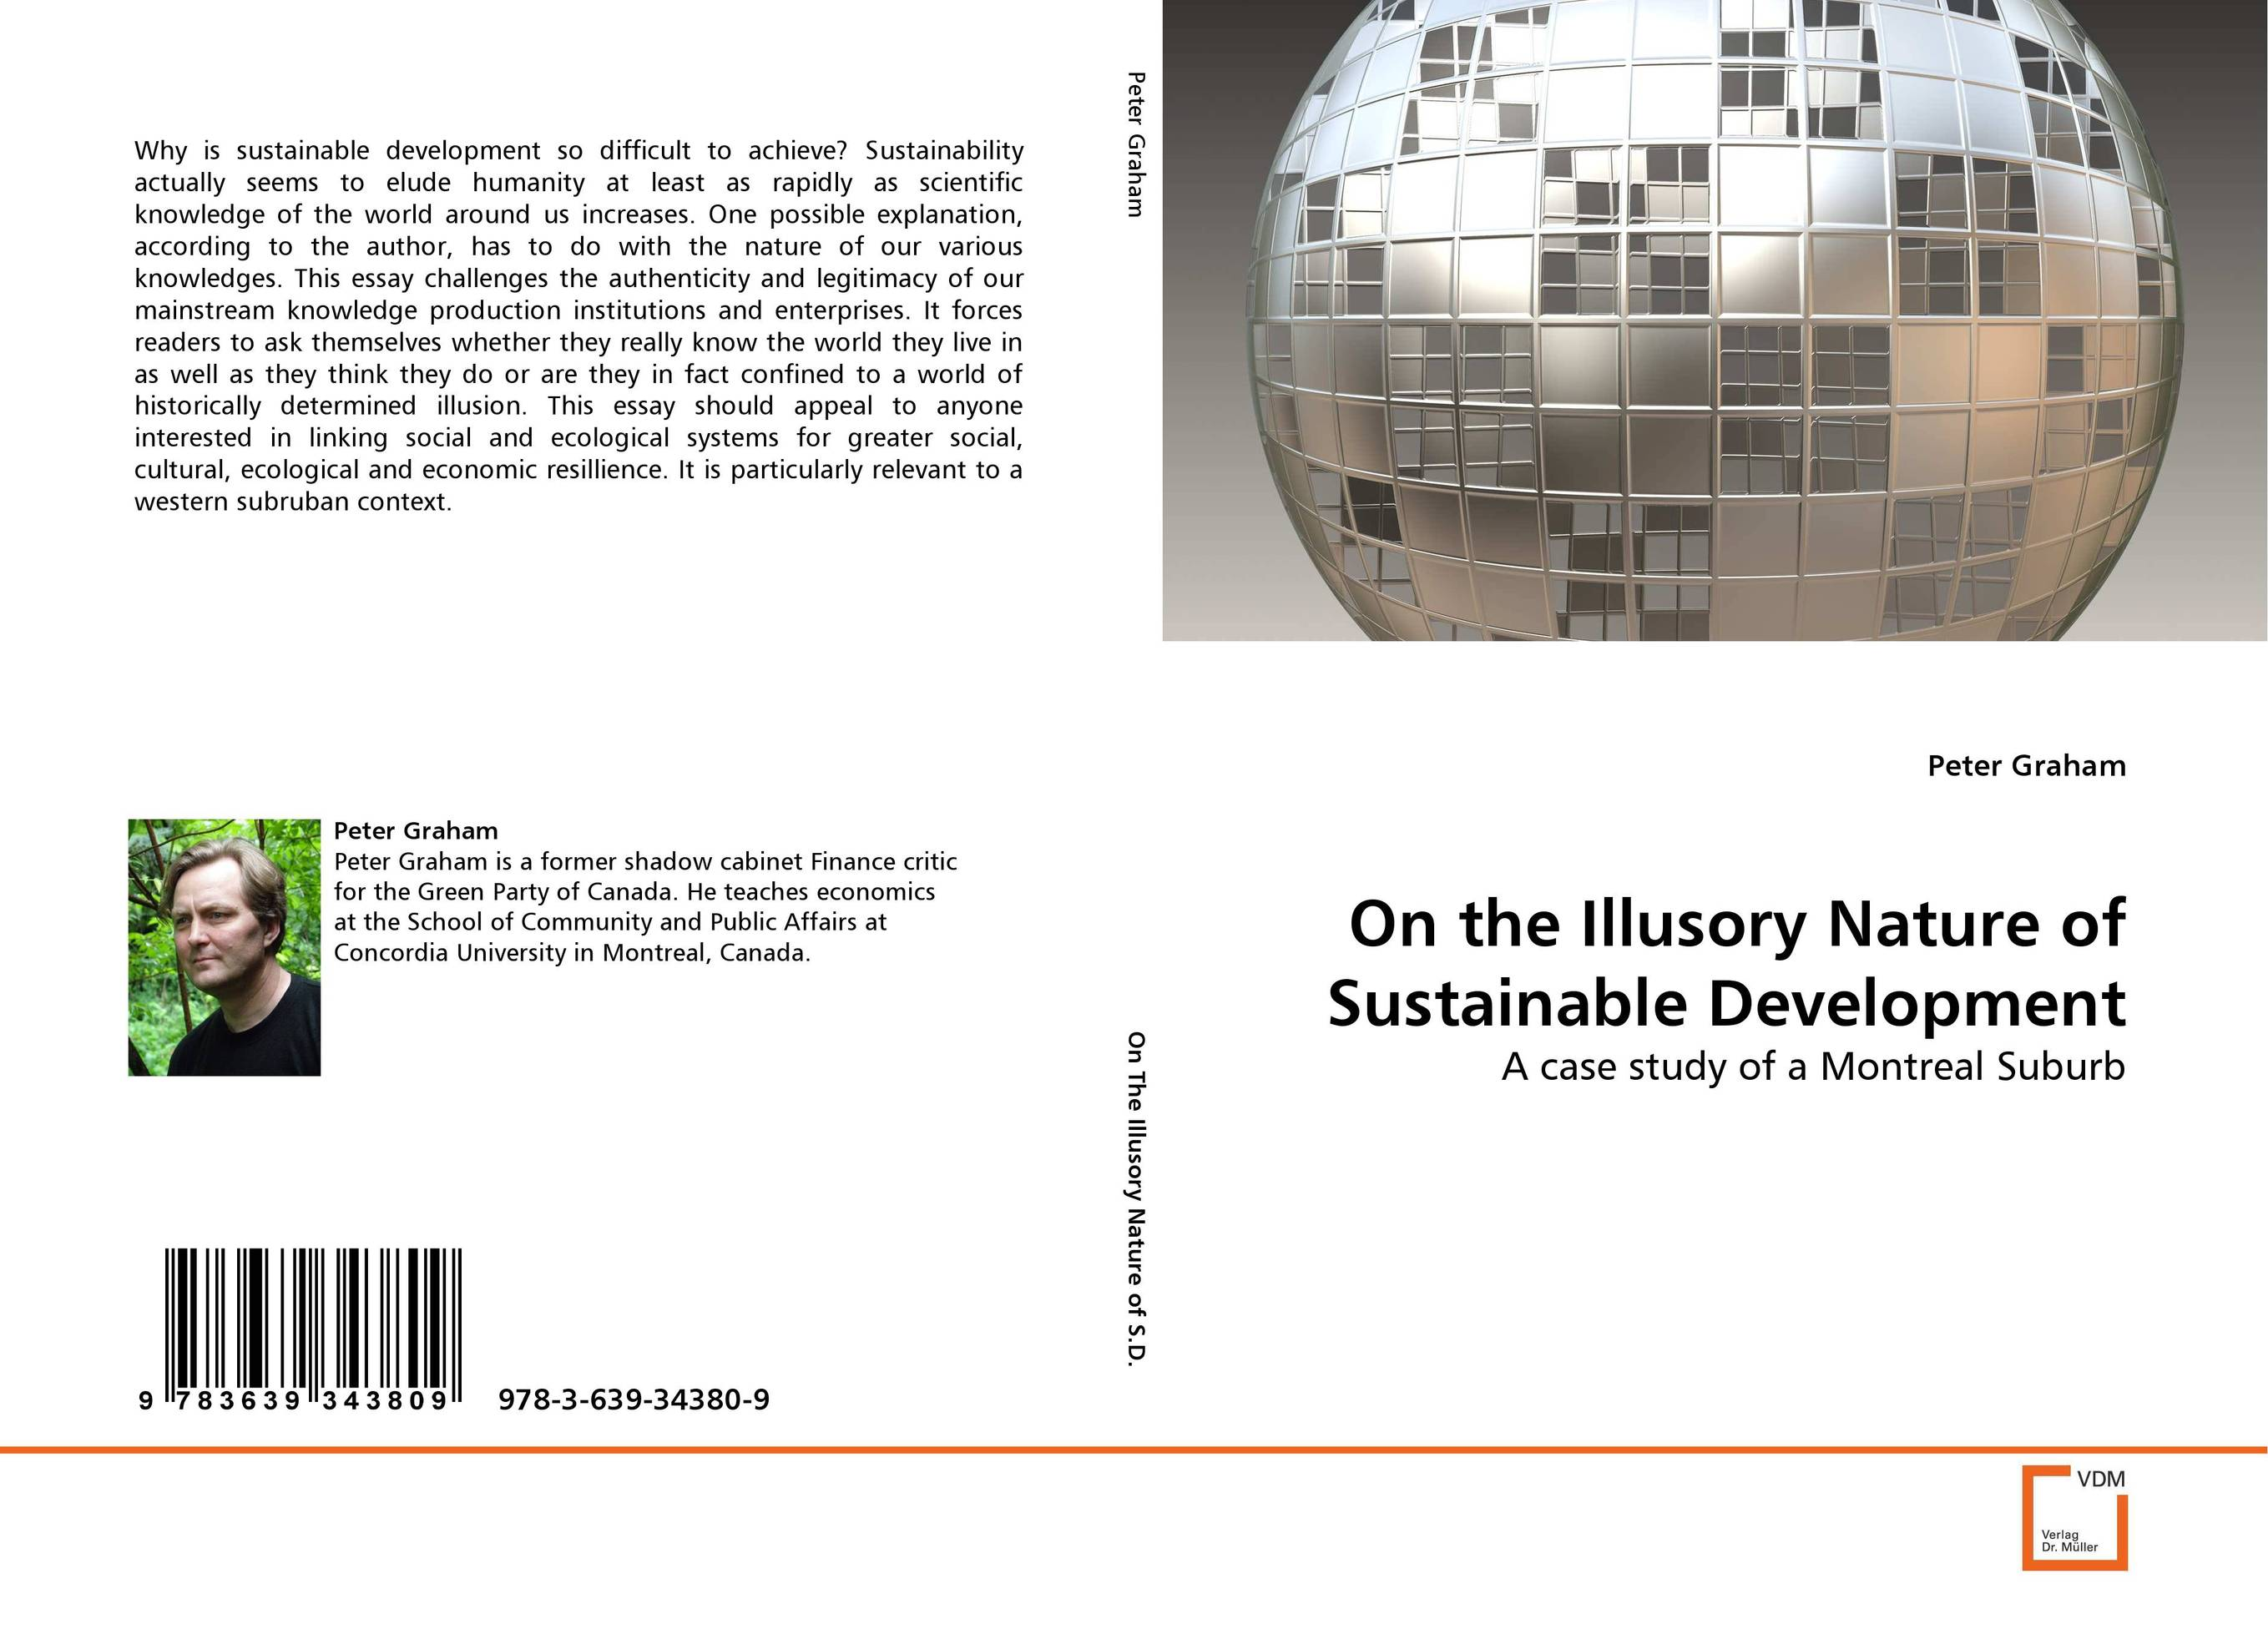 On the Illusory Nature of Sustainable Development seeing things as they are